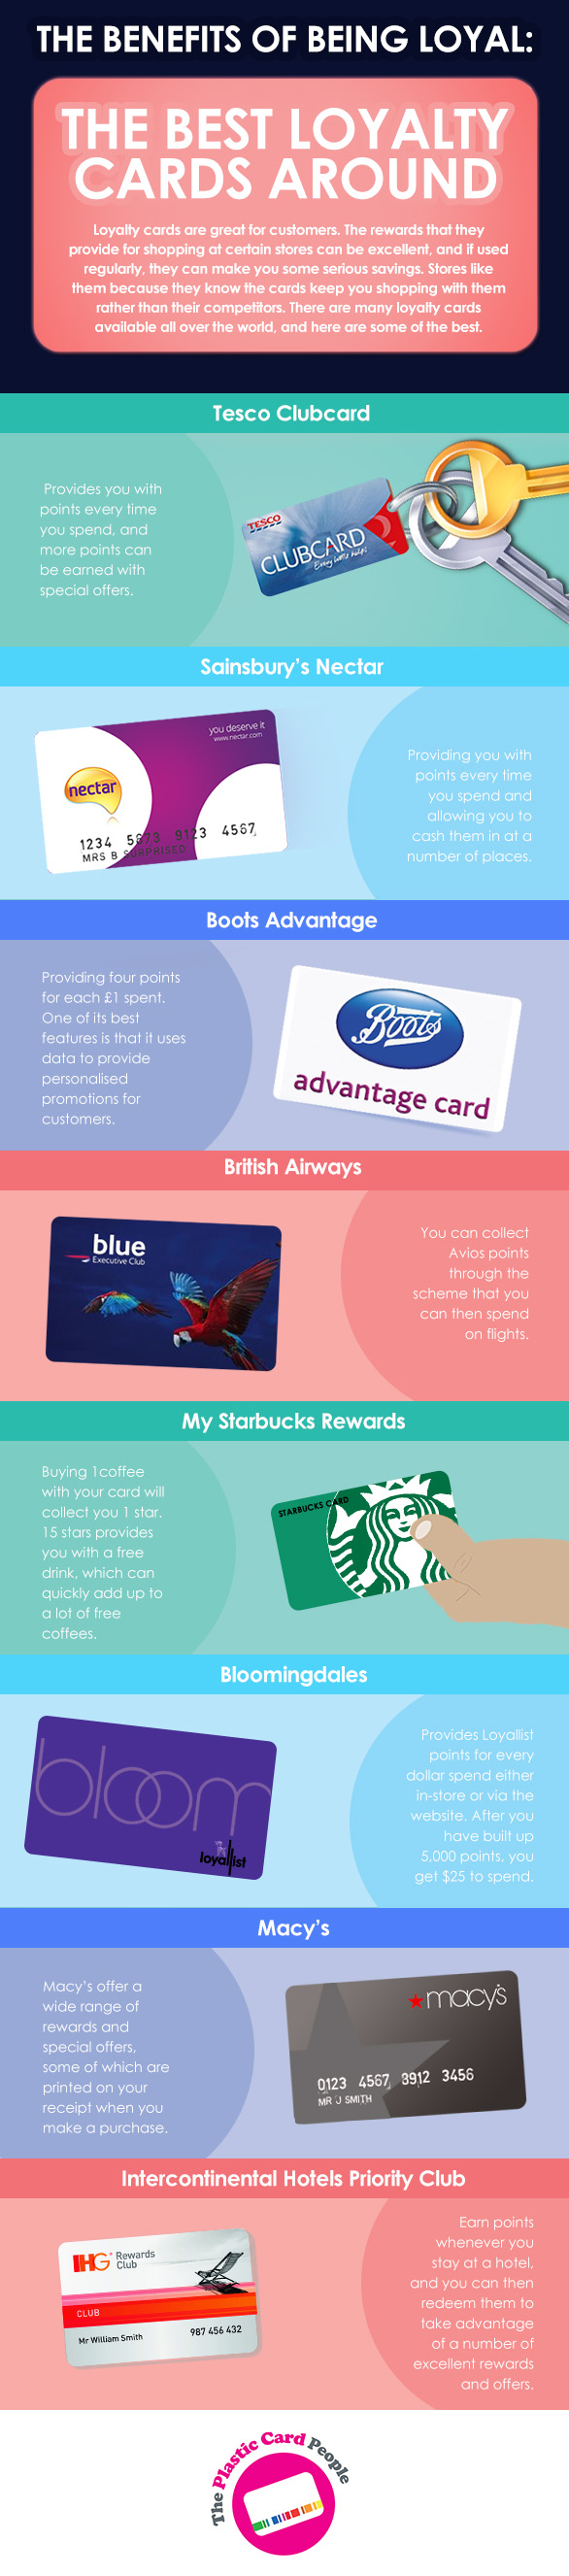 The Benefits of Being Loyal: The Best Loyalty Cards Around